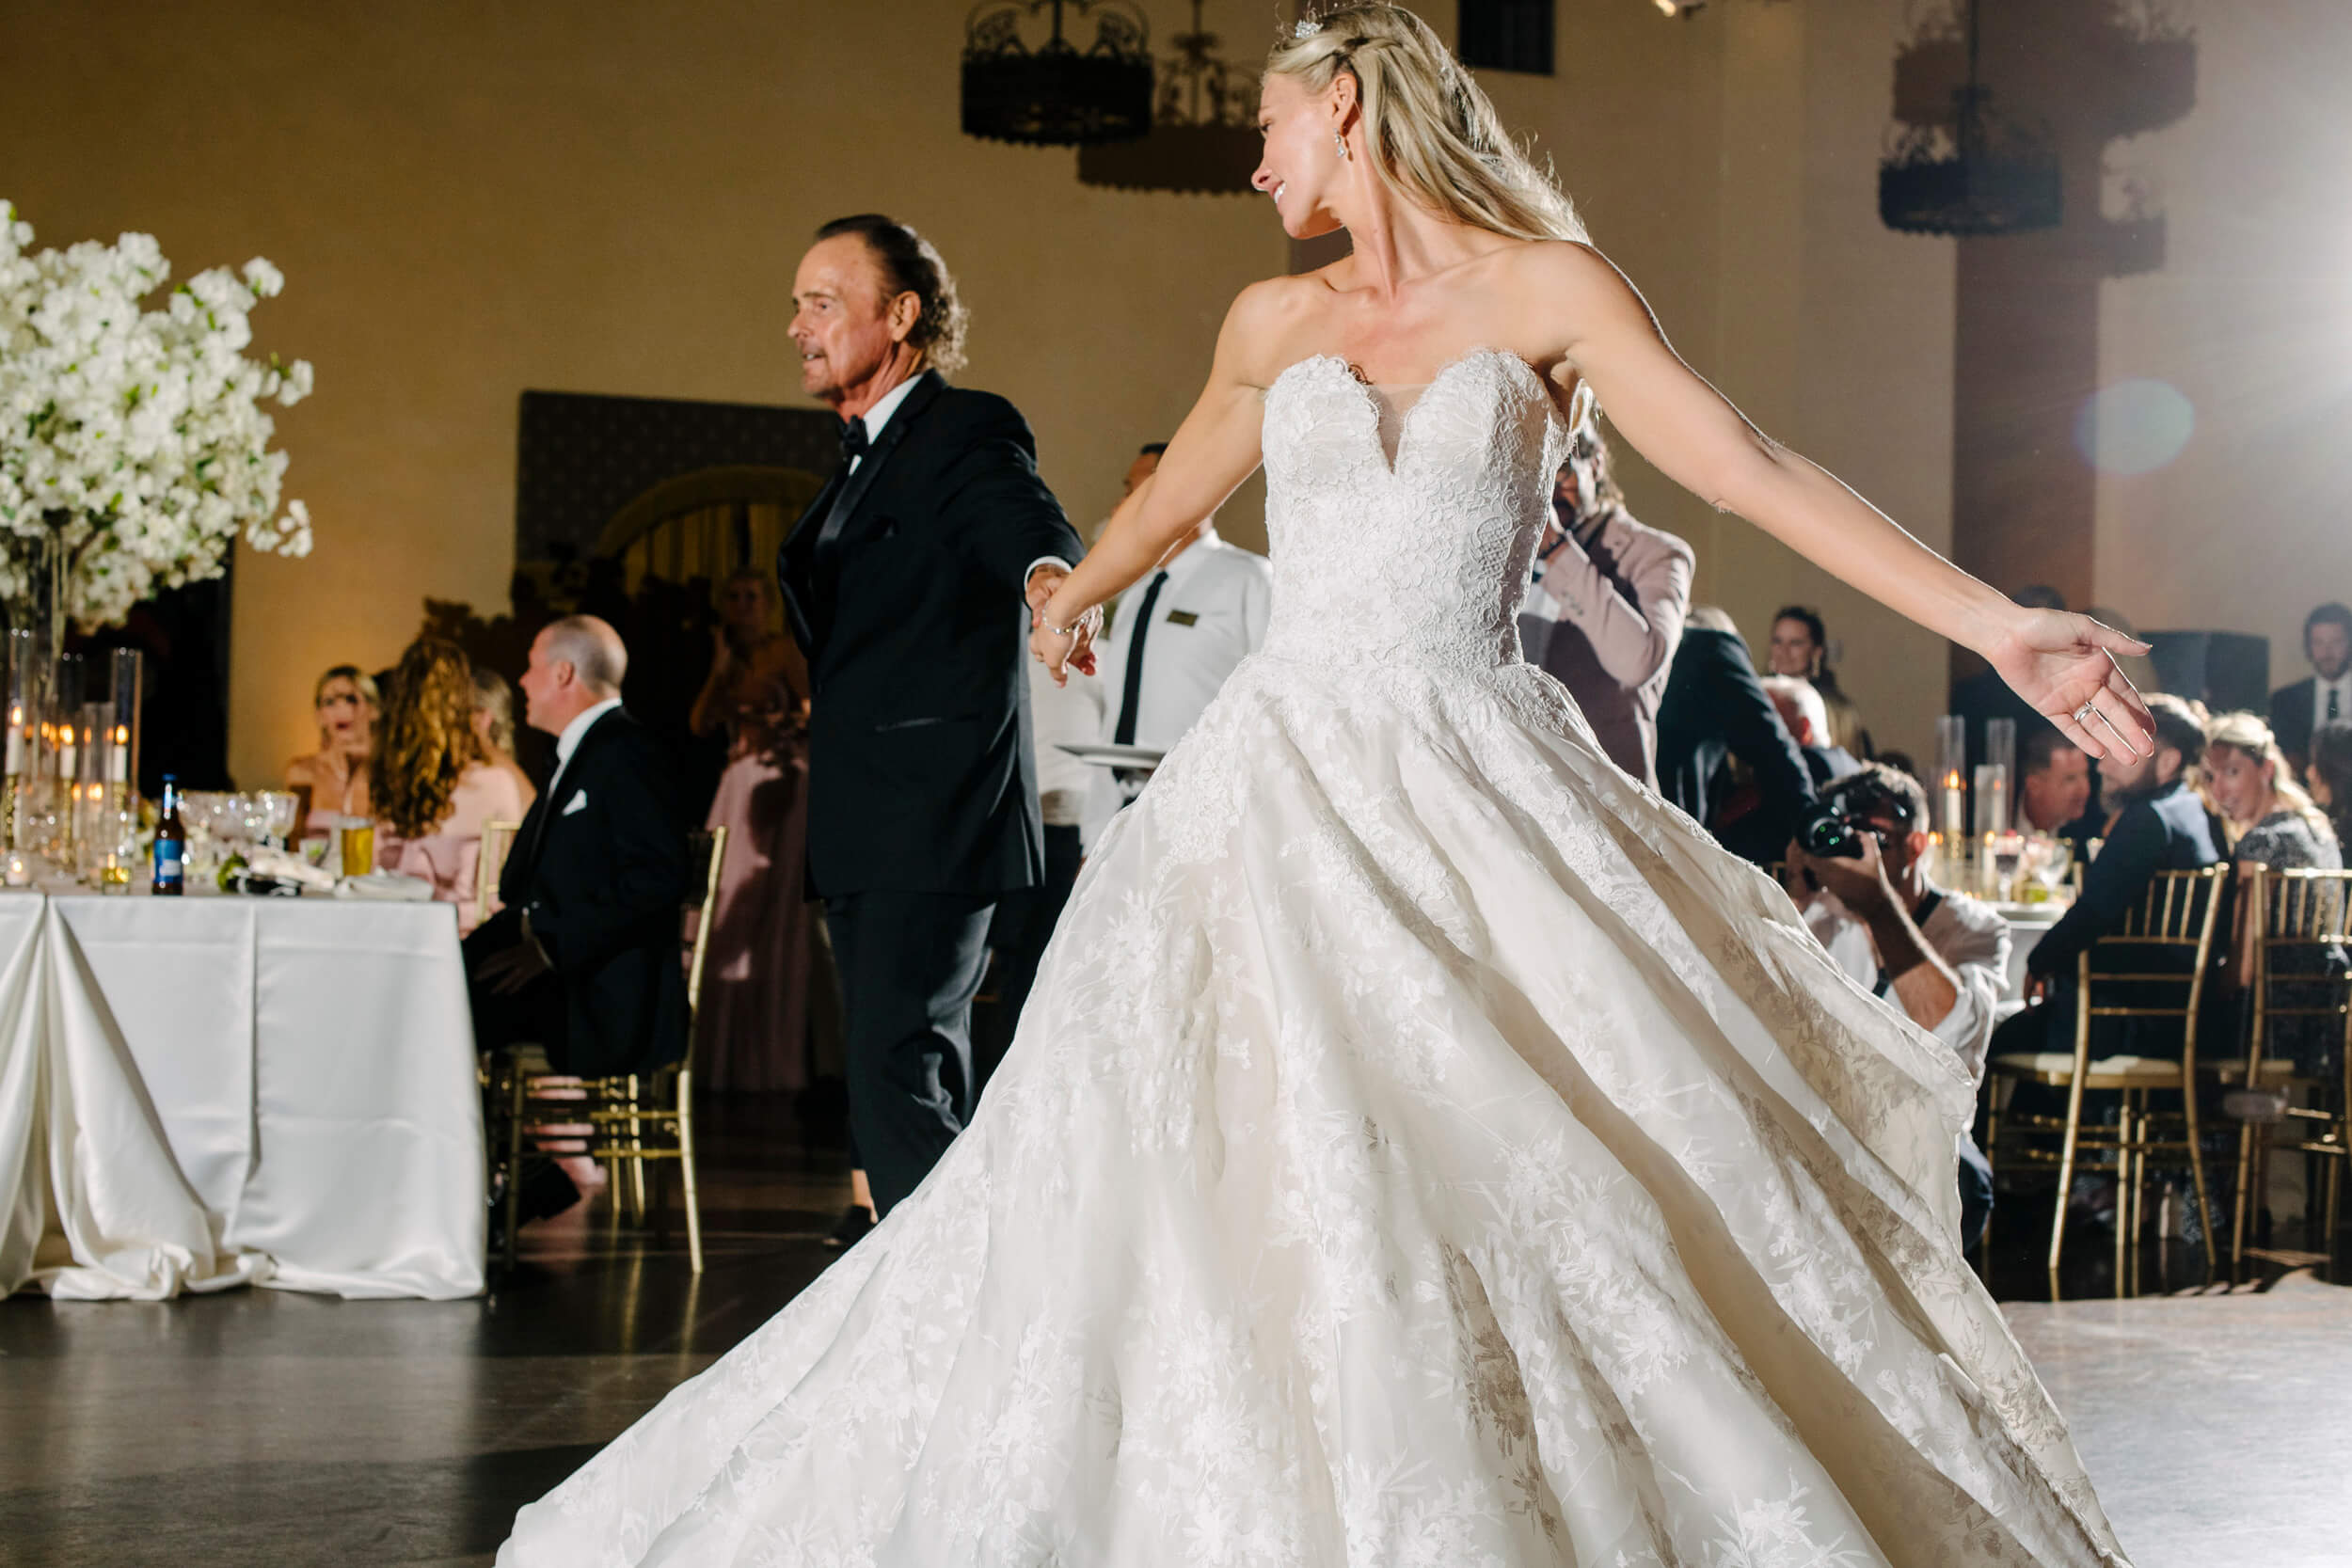 bride in monique lhuillier gown spins during father daughter dance royal family inspired wedding